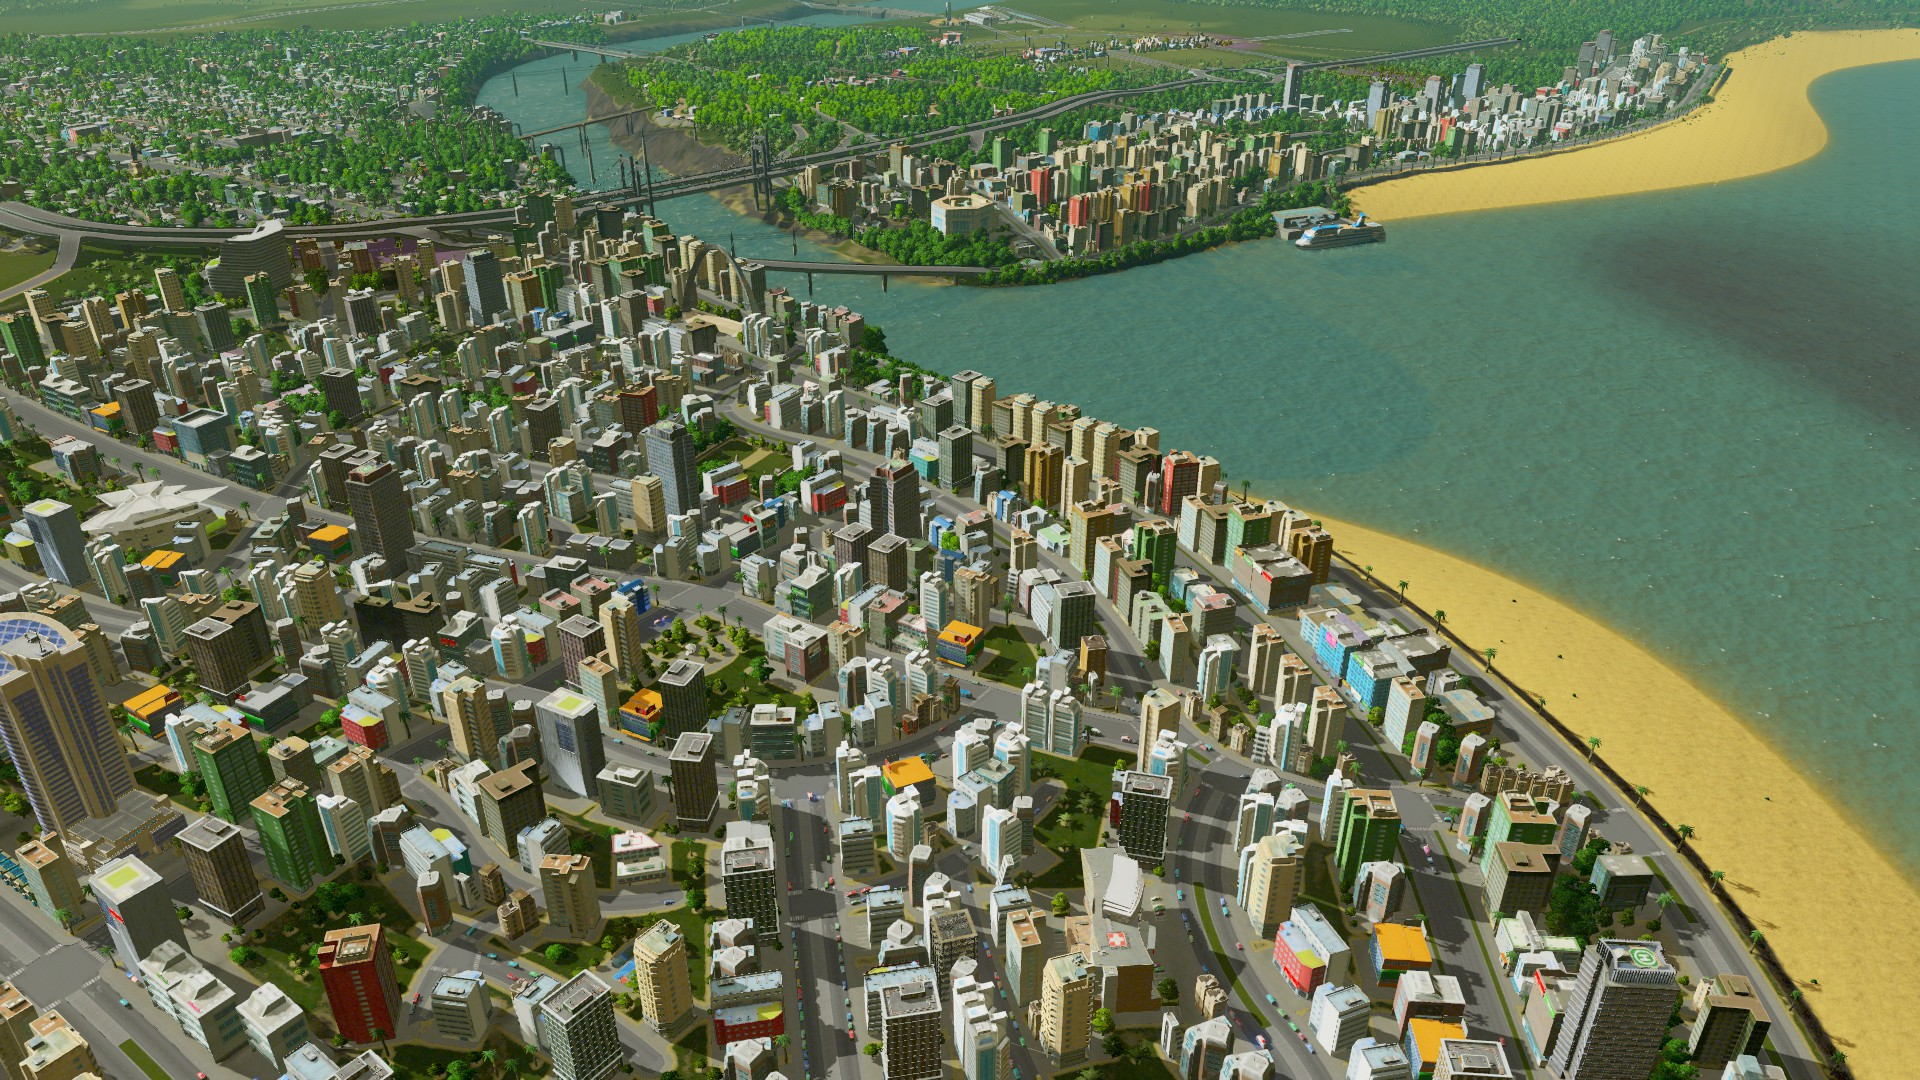 Comparing Simcity To Cities Skylines Provides An Obvious